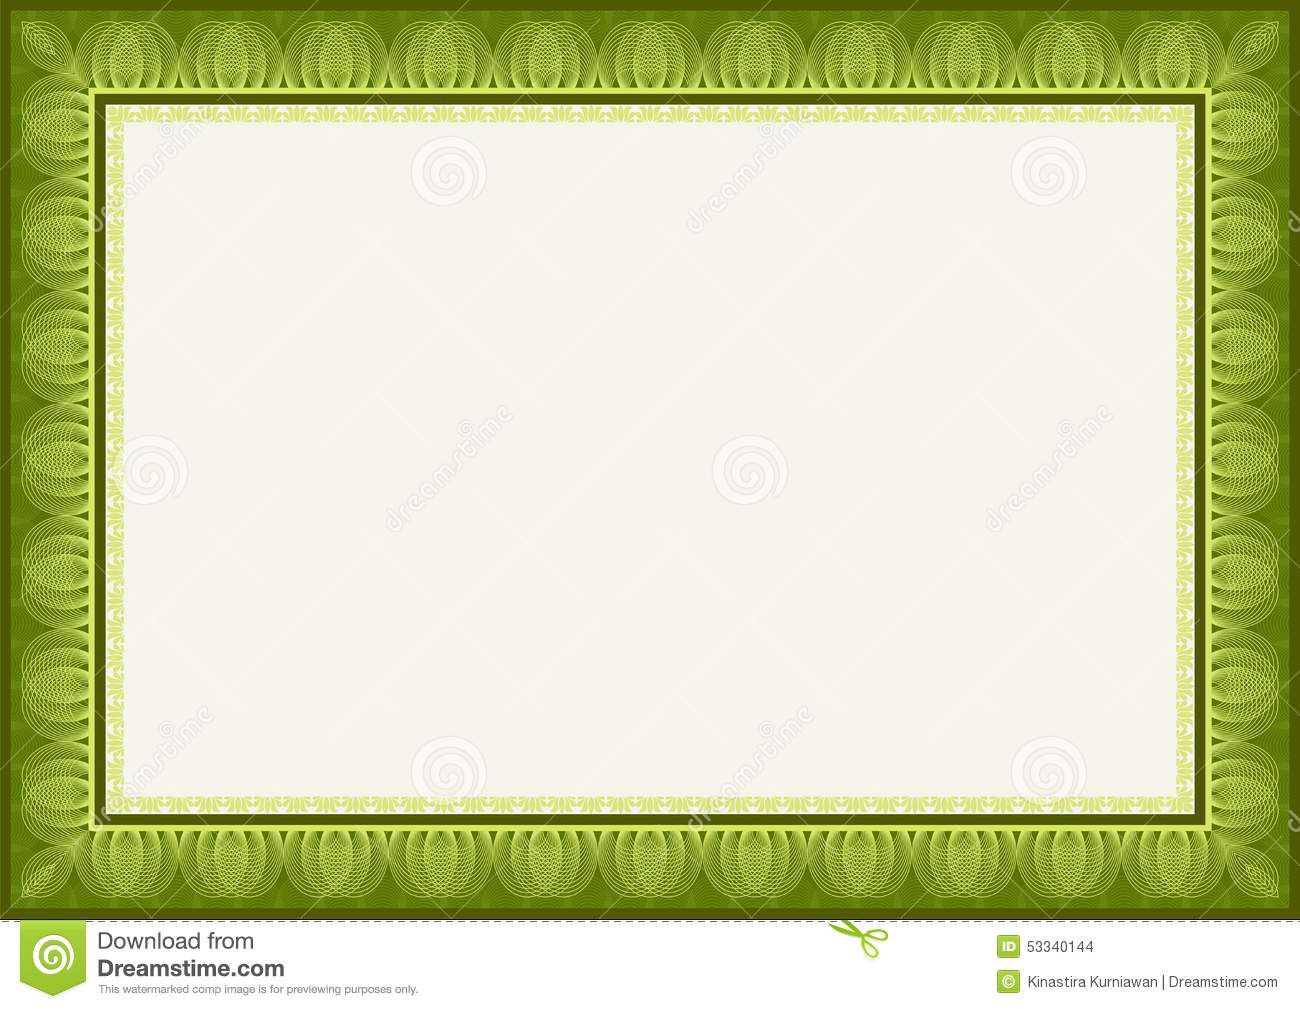 New 2015 Green Certificate And Diploma Template Stock Vector Image 53340144